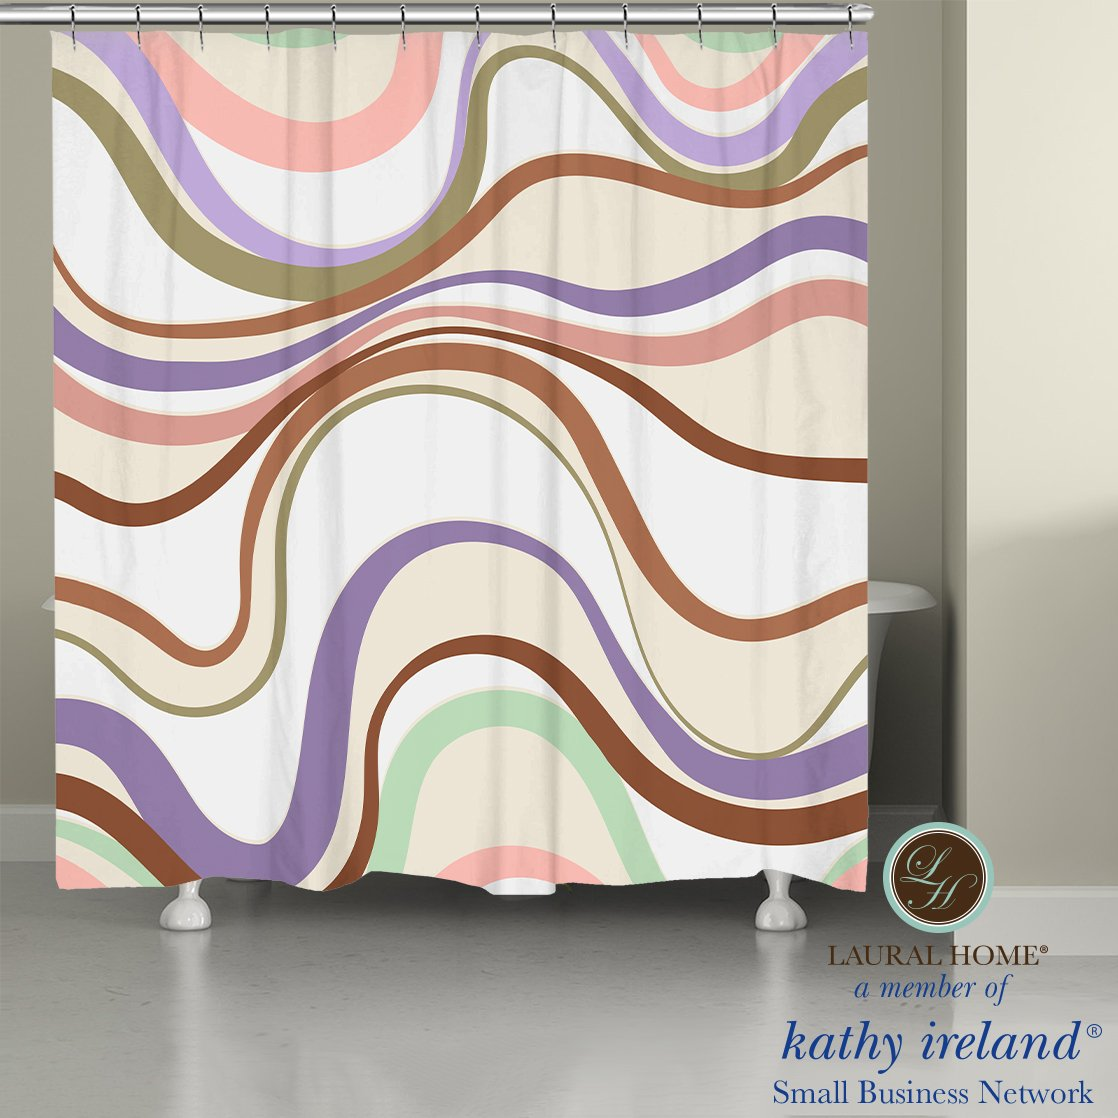 Laural Home kathy ireland® Small Business Network Member Retro Wave Shower Curtain